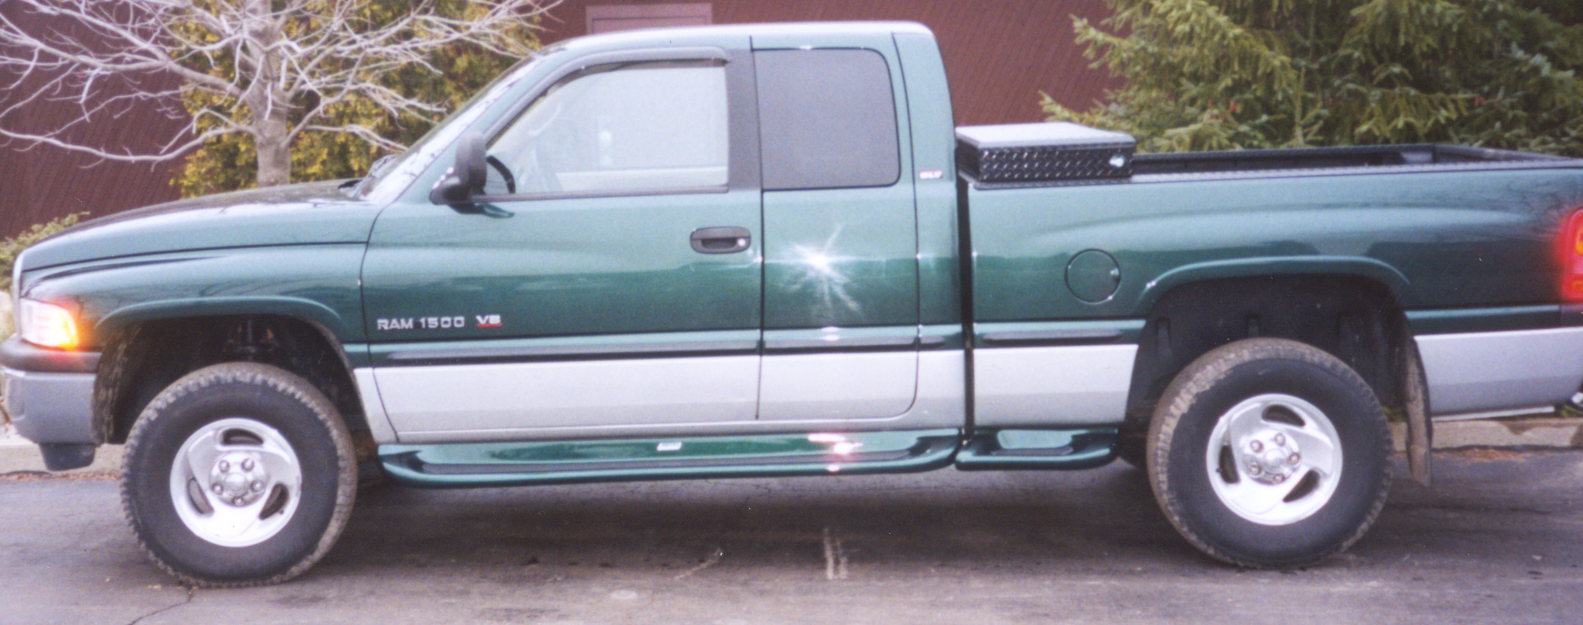 running boards glastep plus custom molded fiberglass cab and bed length 94 01 dodge ram 1500 94 02 dodge ram 2500 3500 gray primer owens products owens products dodge ram 2500 3500